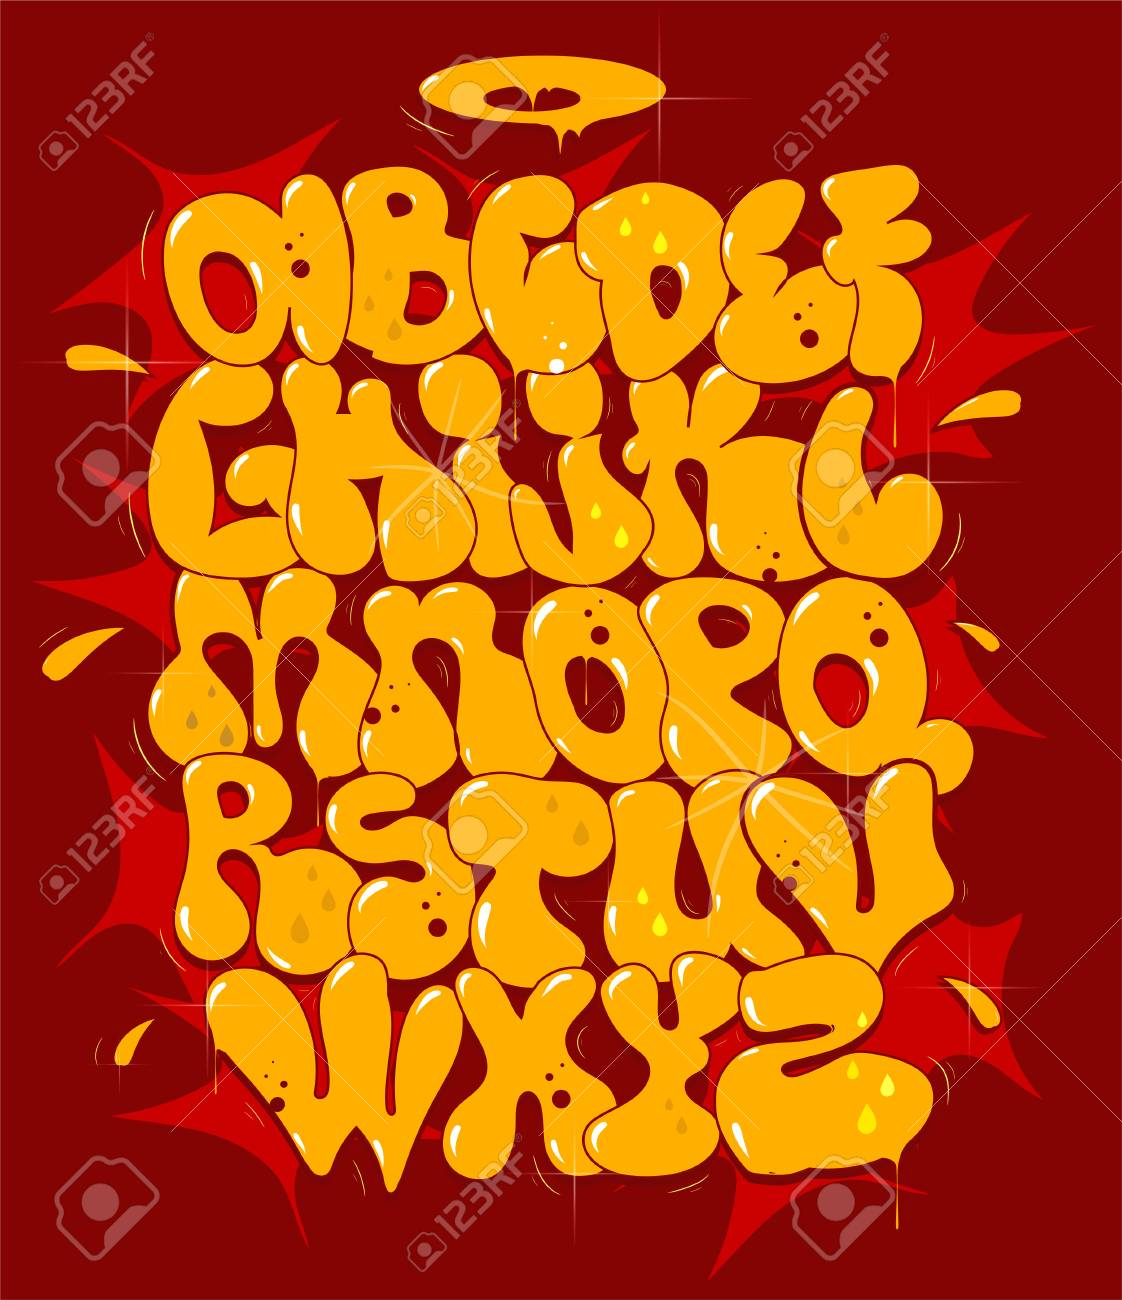 Vector Yellow Bubble Graffiti Font Vector